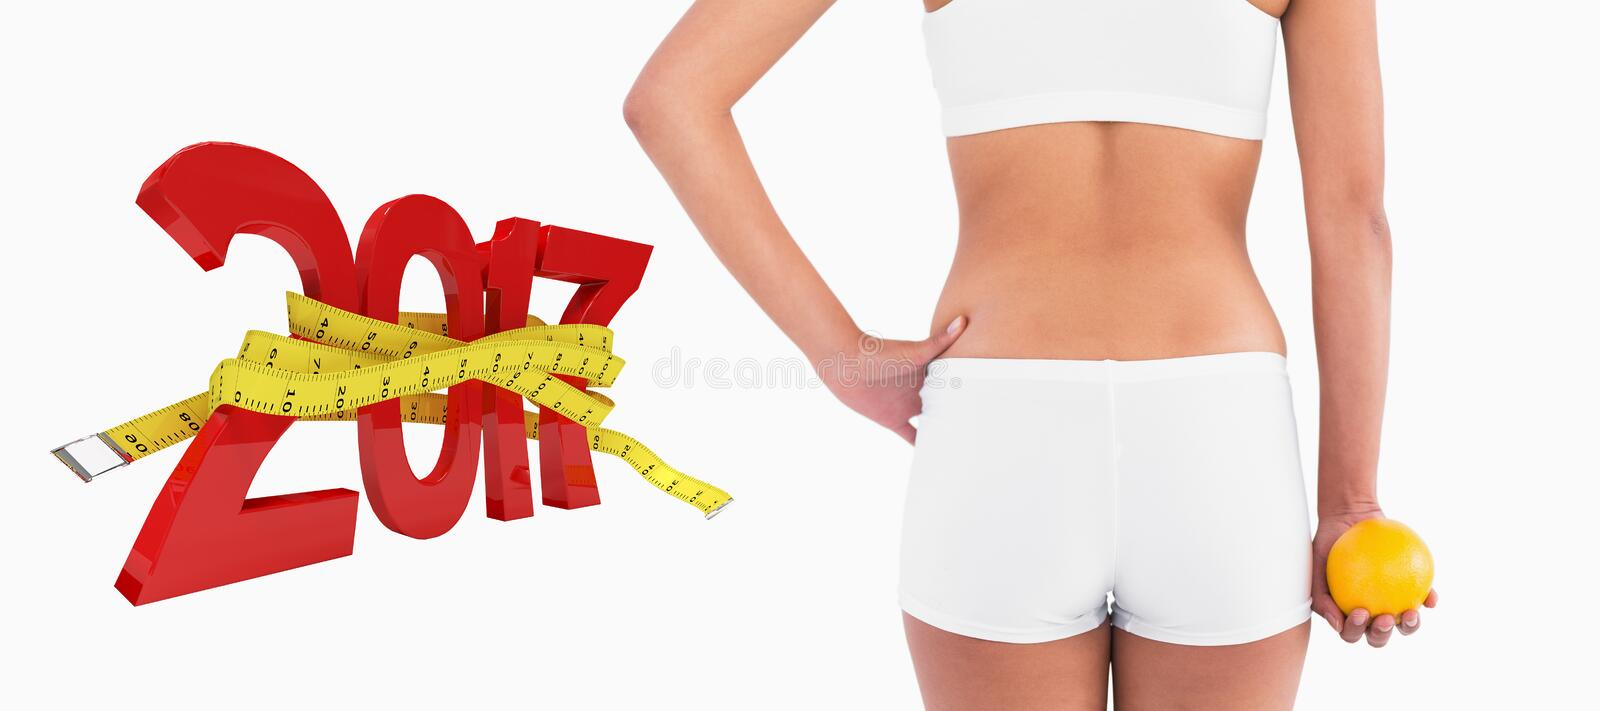 3D Composite image of rear view of female slender body in shorts royalty free stock images